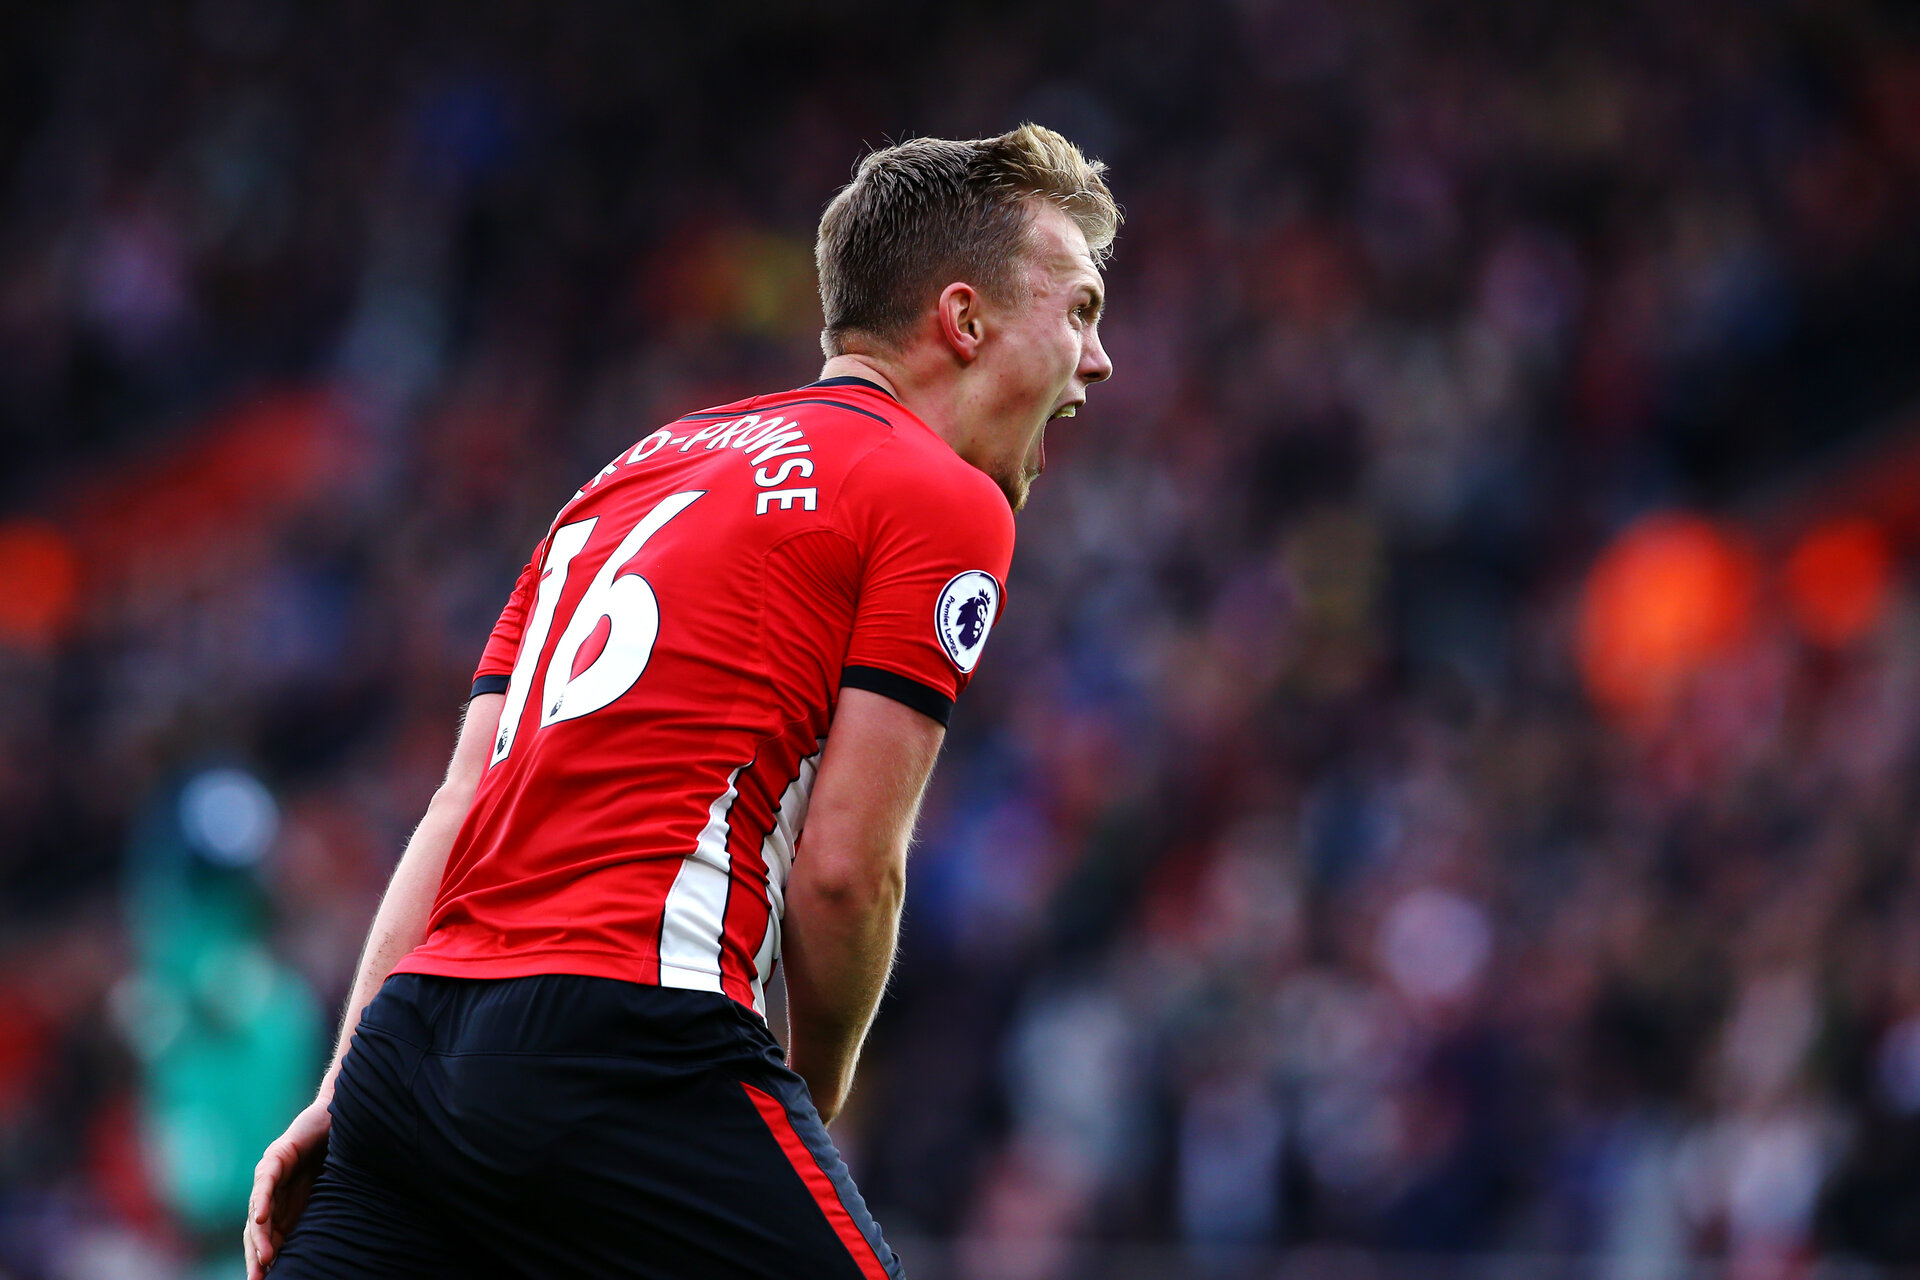 SOUTHAMPTON, ENGLAND - MARCH 09:  James Ward-Prowse celebrates after scoring during the Premier League match between Southampton FC and Tottenham Hotspur at St Mary's Stadium on March 09, 2019 in Southampton, United Kingdom. (Photo by James Bridle - Southampton FC/Southampton FC via Getty Images)